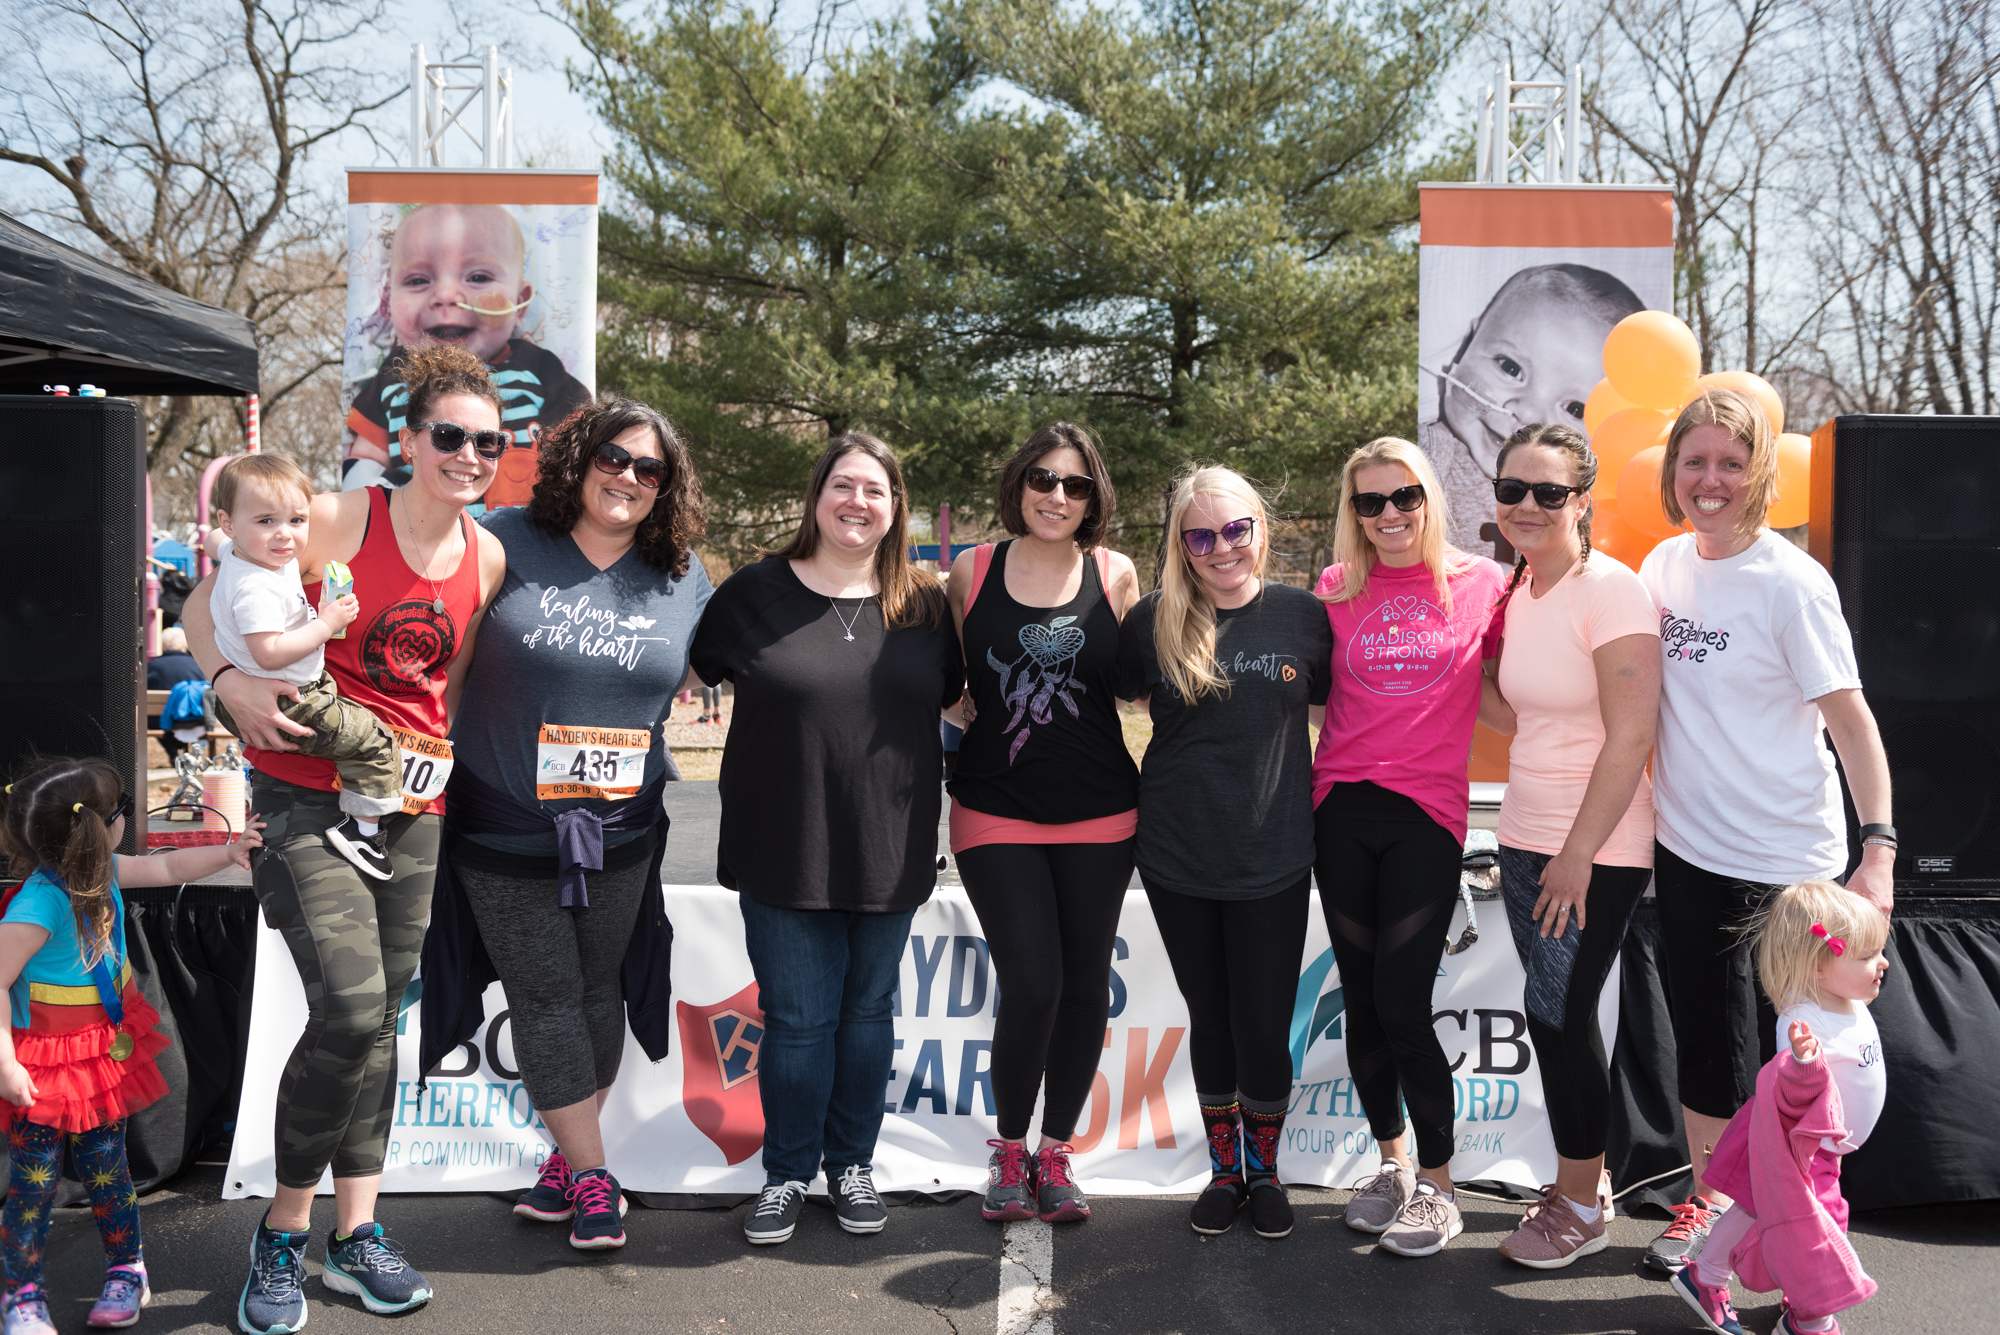 2019-03-30 Haydens Heart 5k - Riverside County Park - North Arlington NJ-429.jpg